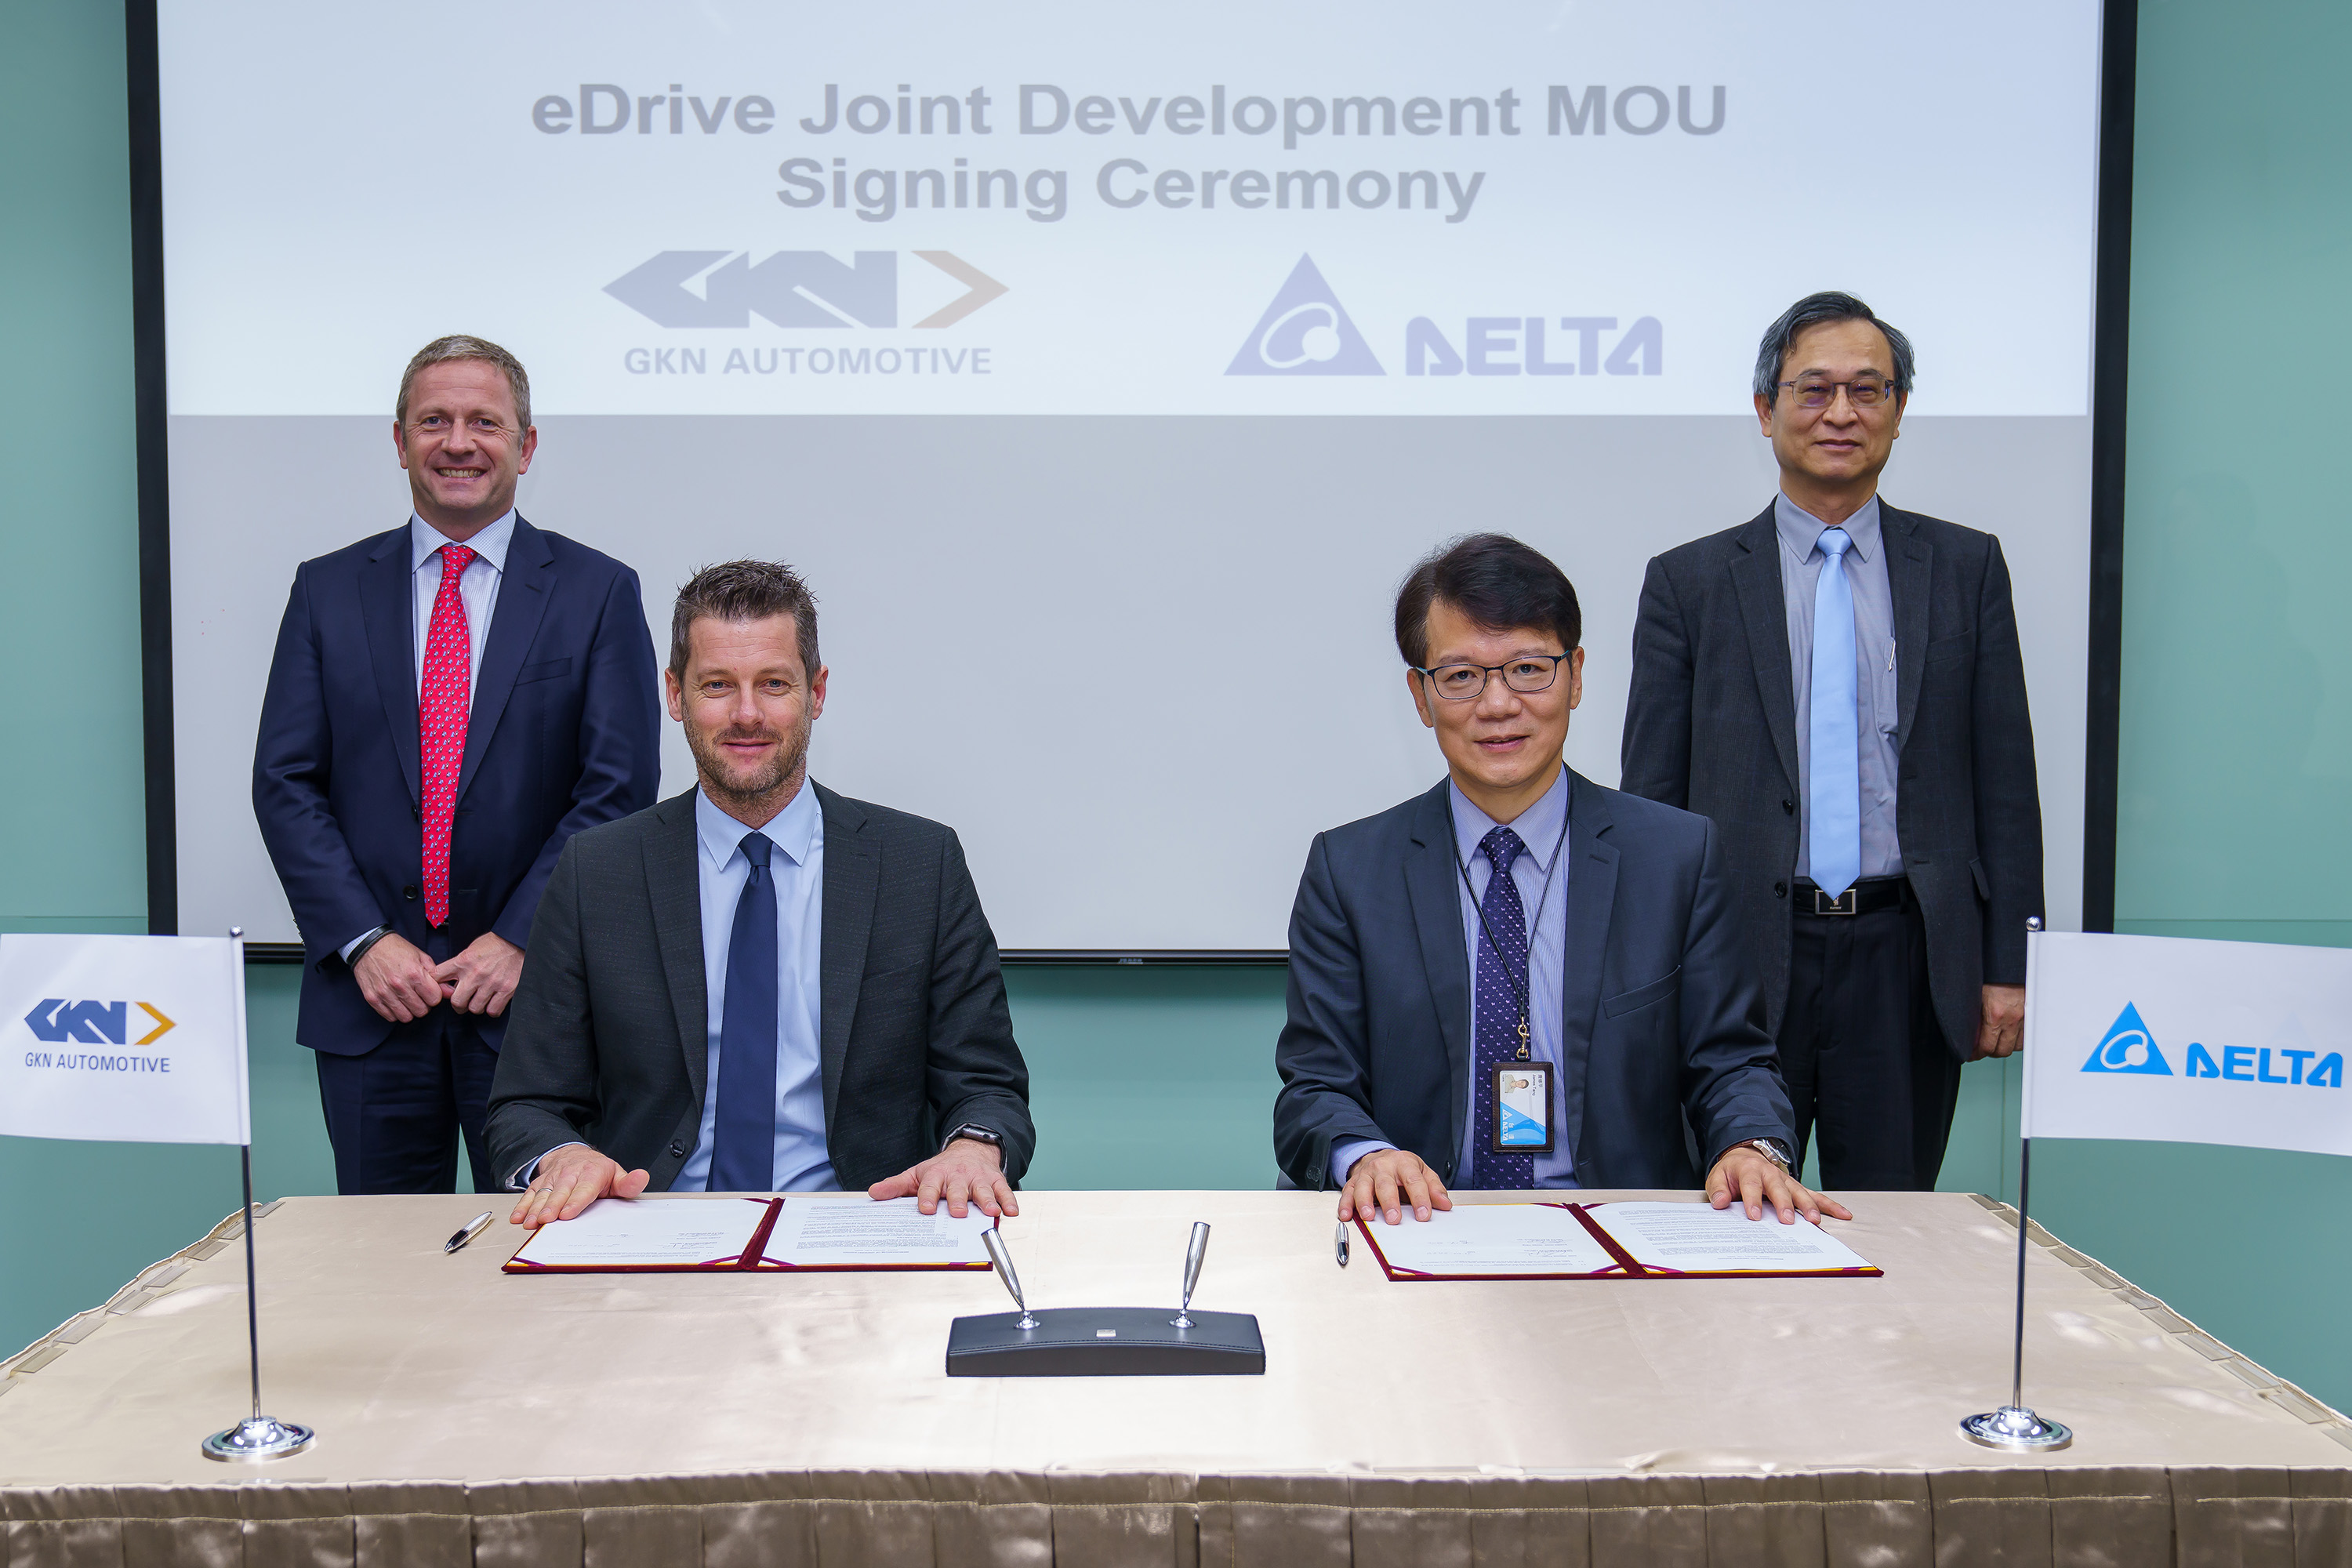 L-R: Liam Butterworth, CEO, GKN Automotive; Hannes Prenn, COO, ePowertrain, GKN Automotive; Simon Chang, COO, Delta Electronics; James Tang, VP and GM of Electric Vehicle Solutions Business Group of Delta Electronics